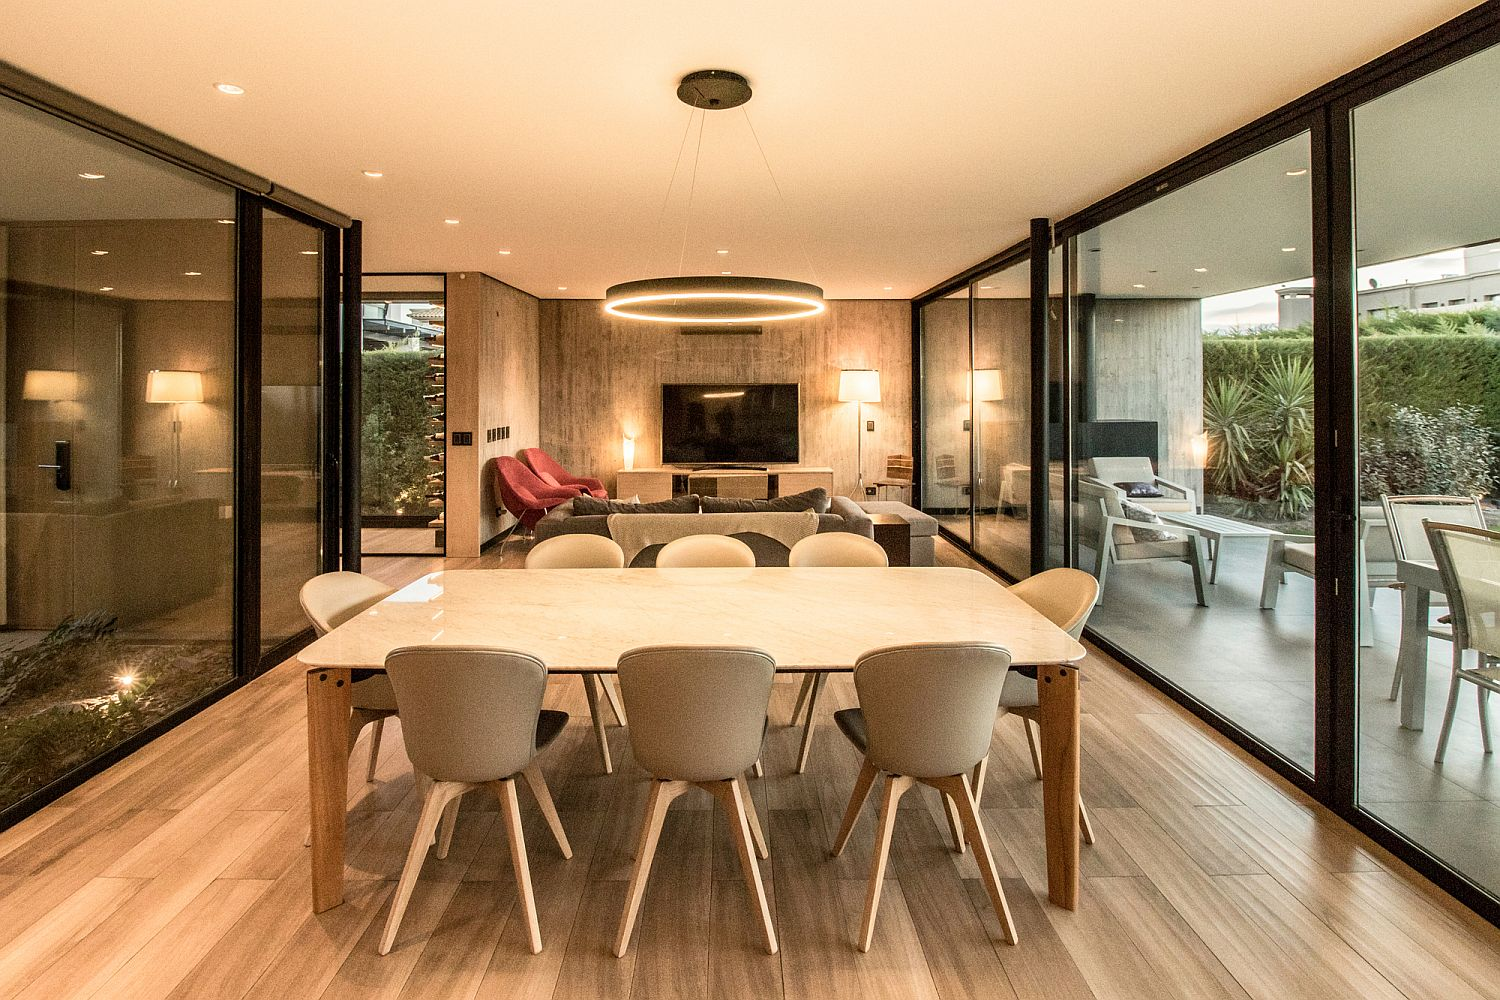 Dining space and living area of the LL House